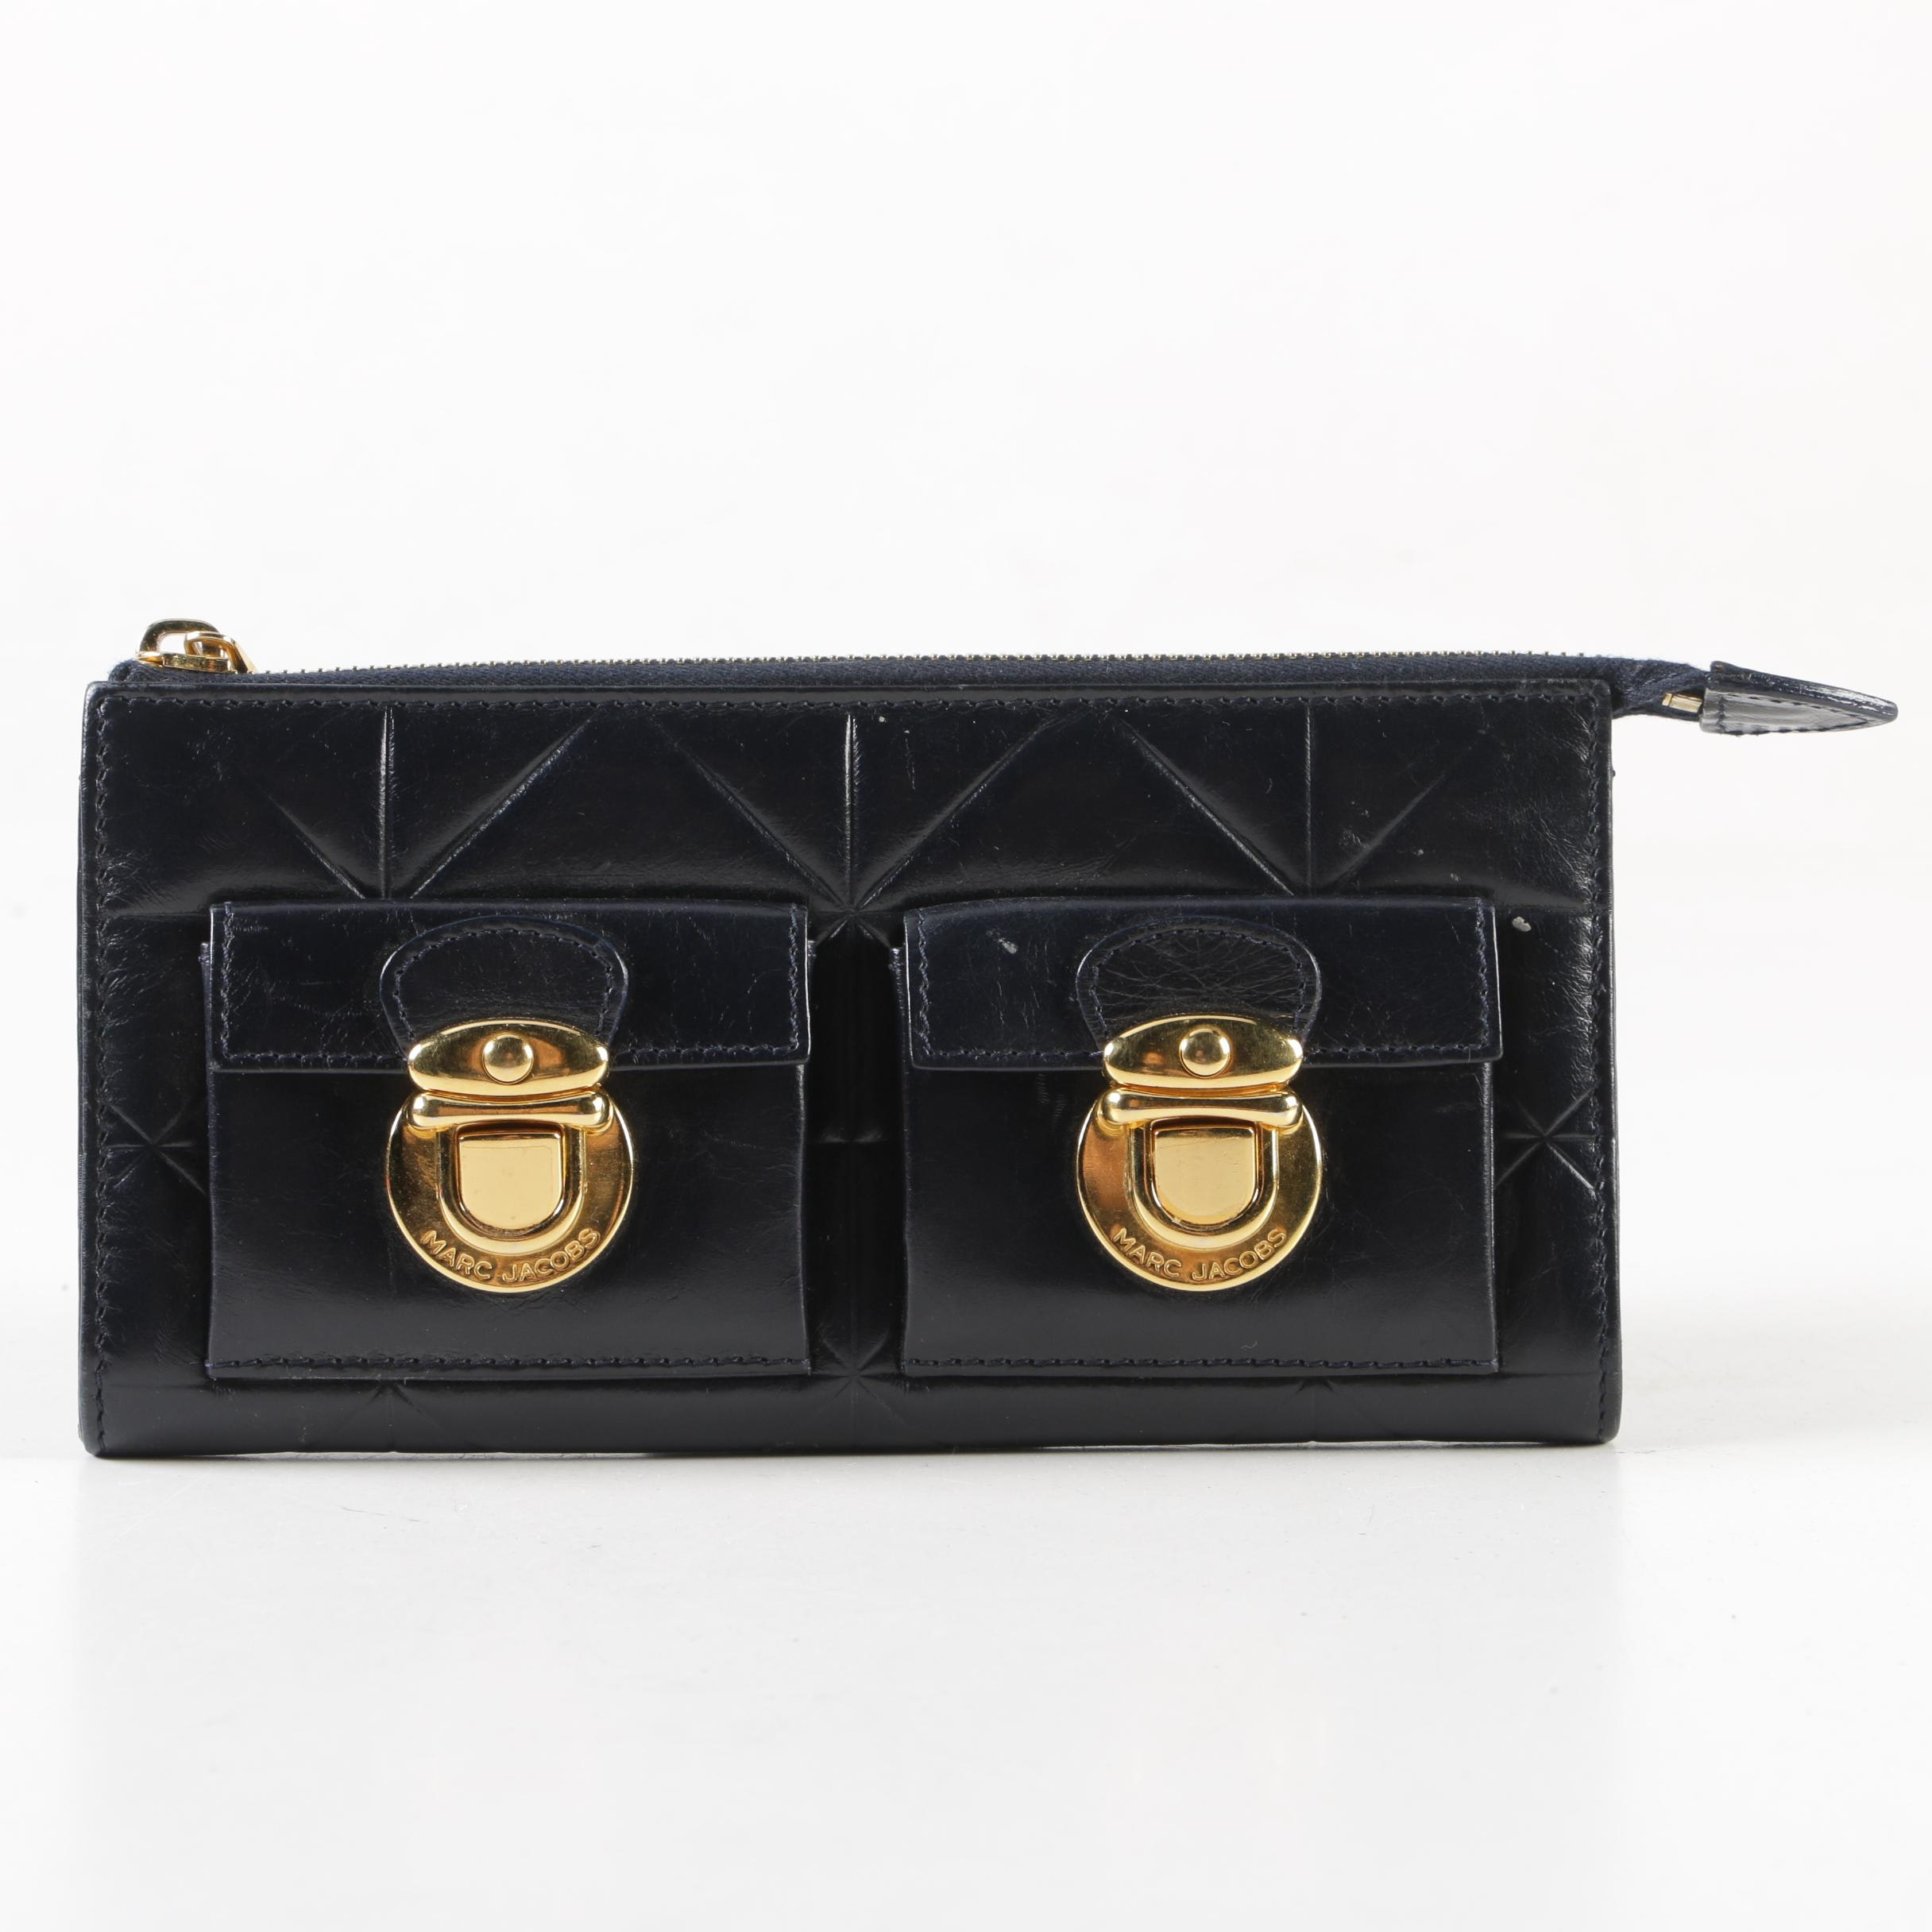 Marc Jacobs Quilted Black Leather Wallet